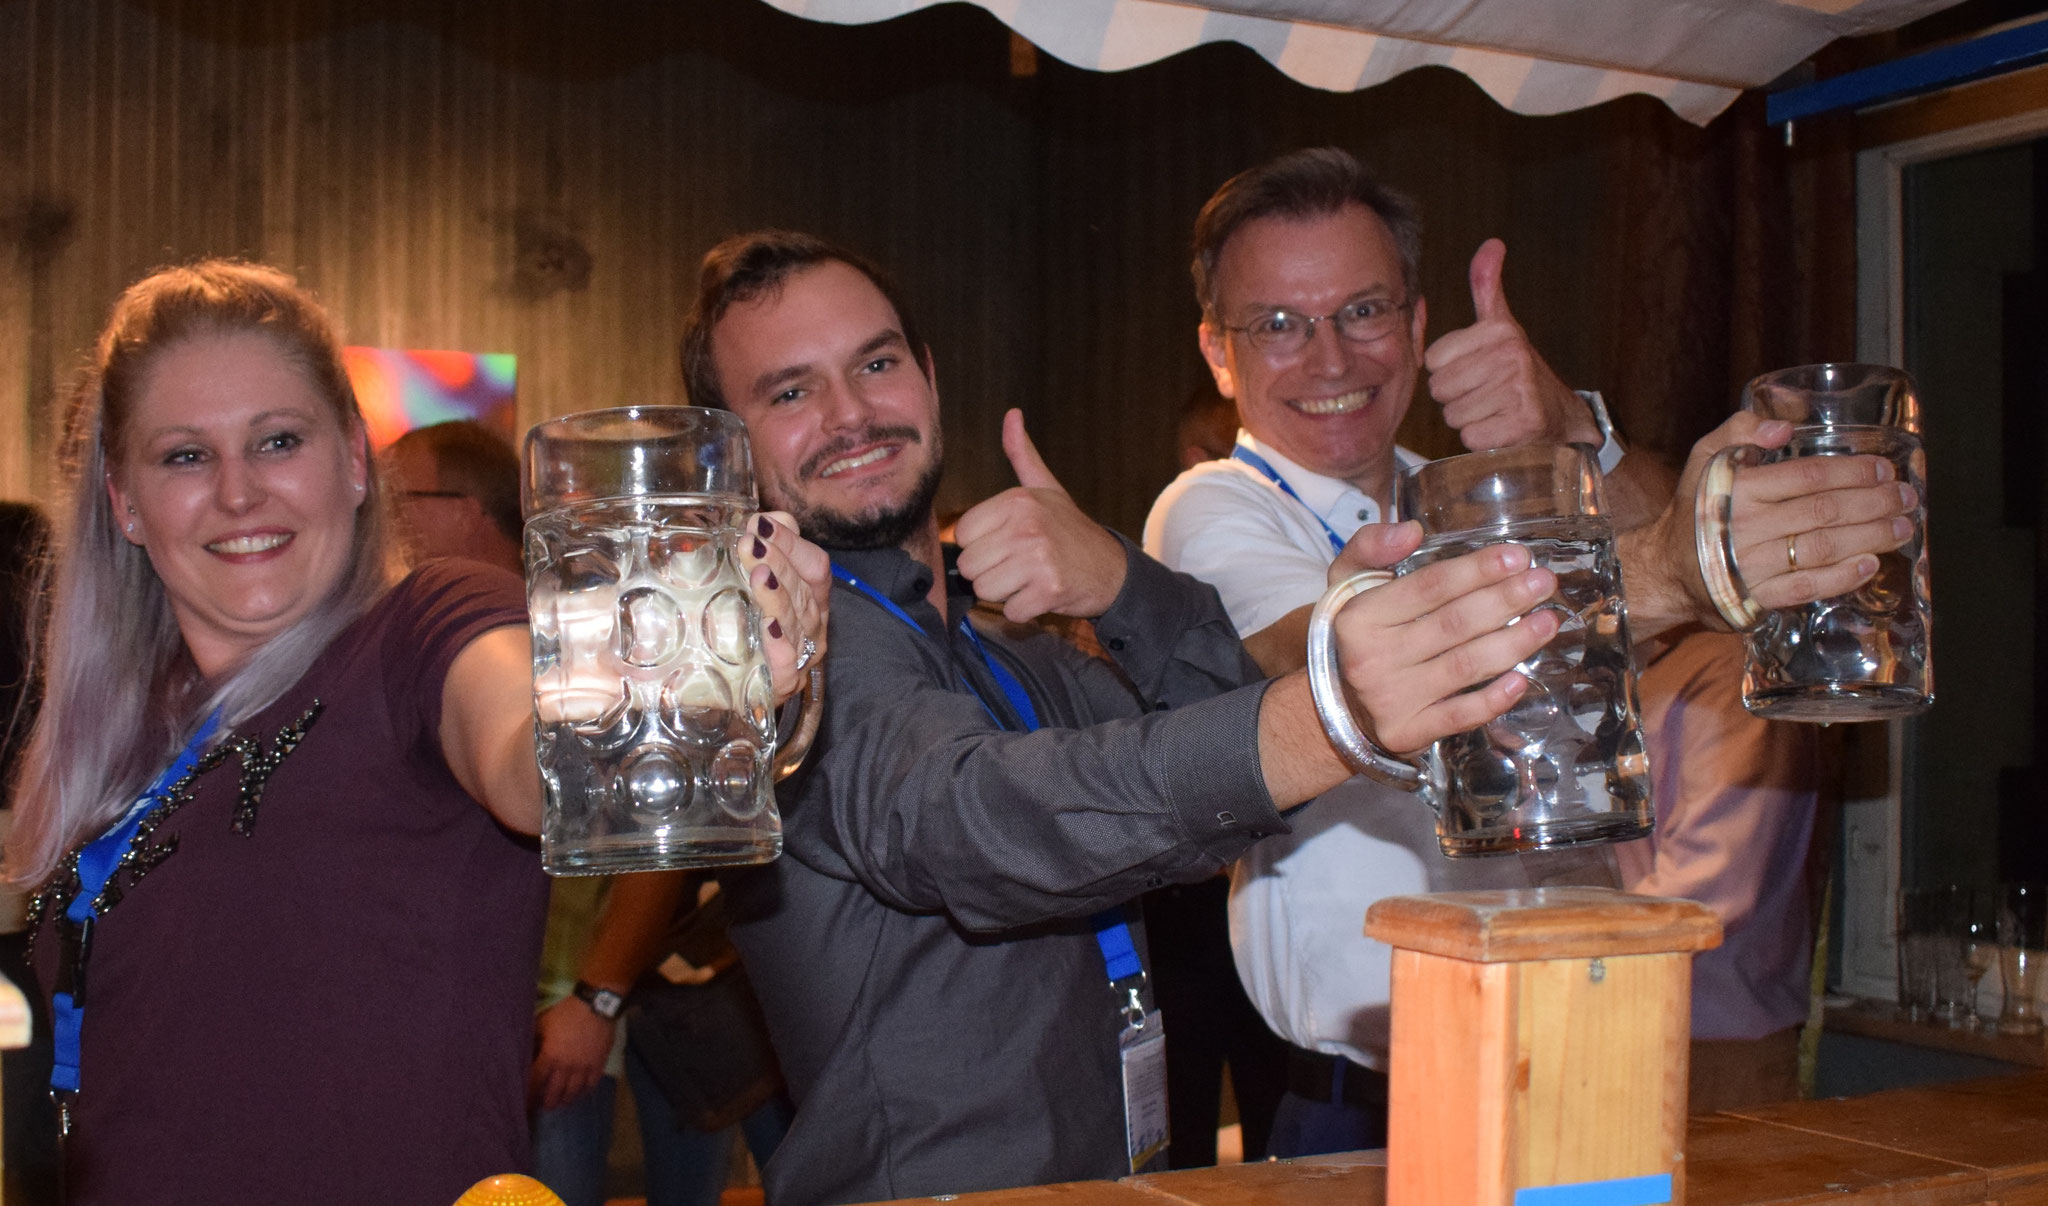 LANE participants playing beer stein holding at the Casual Reception & Bavarian Evening